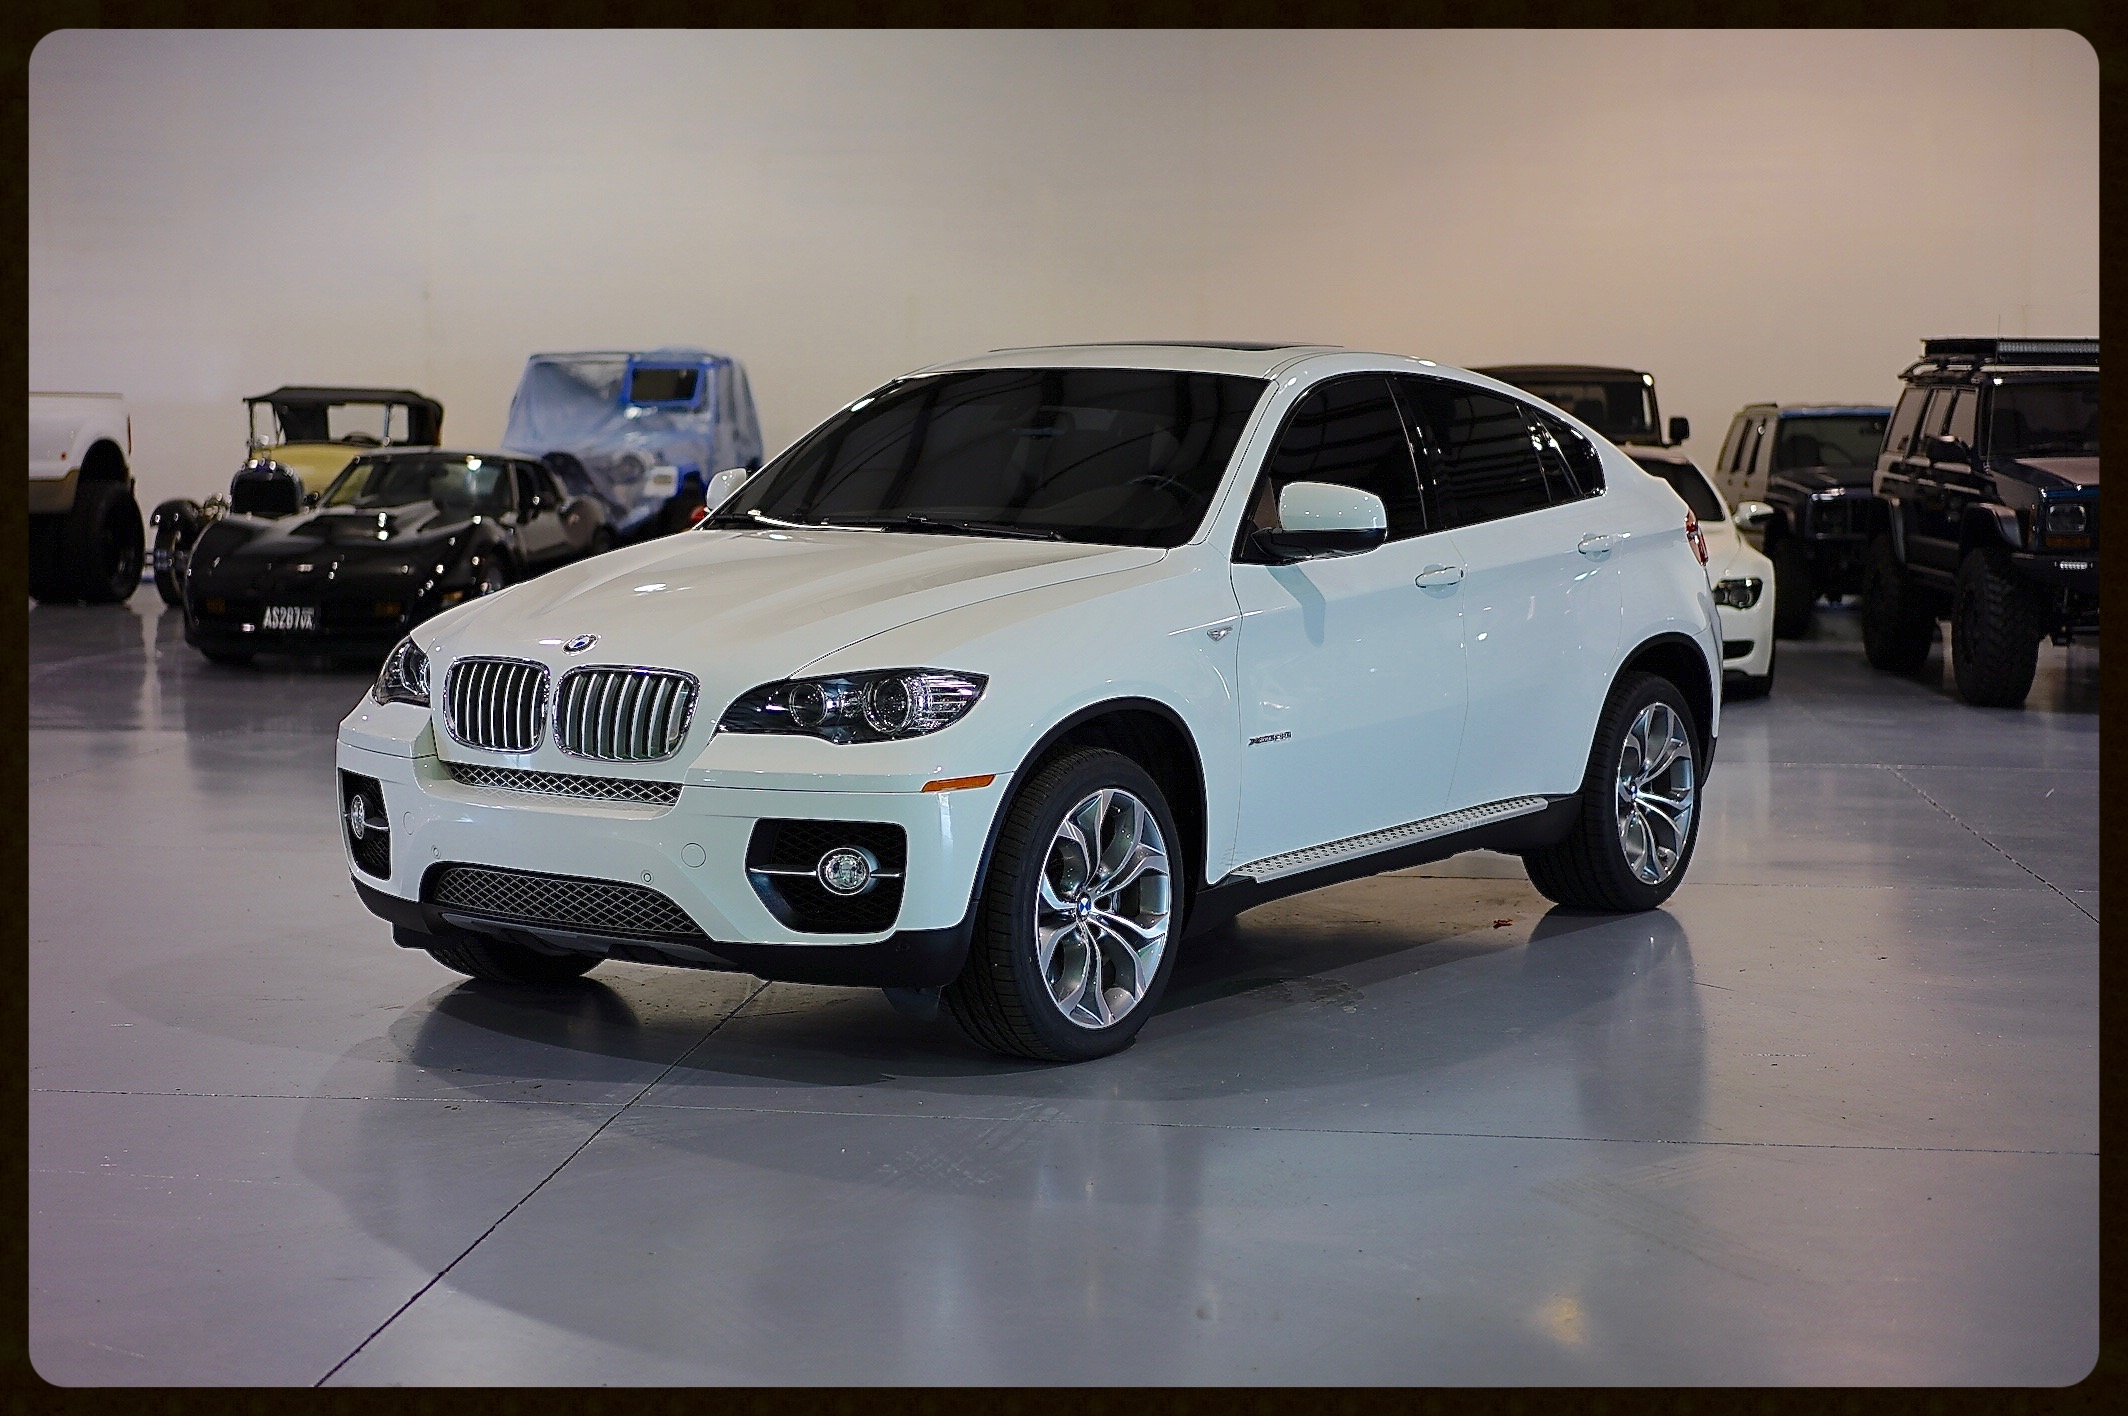 2012 BMW X6 XDrive5.0 / Twin Turbo / Red Interior / Sport Package / New Tires